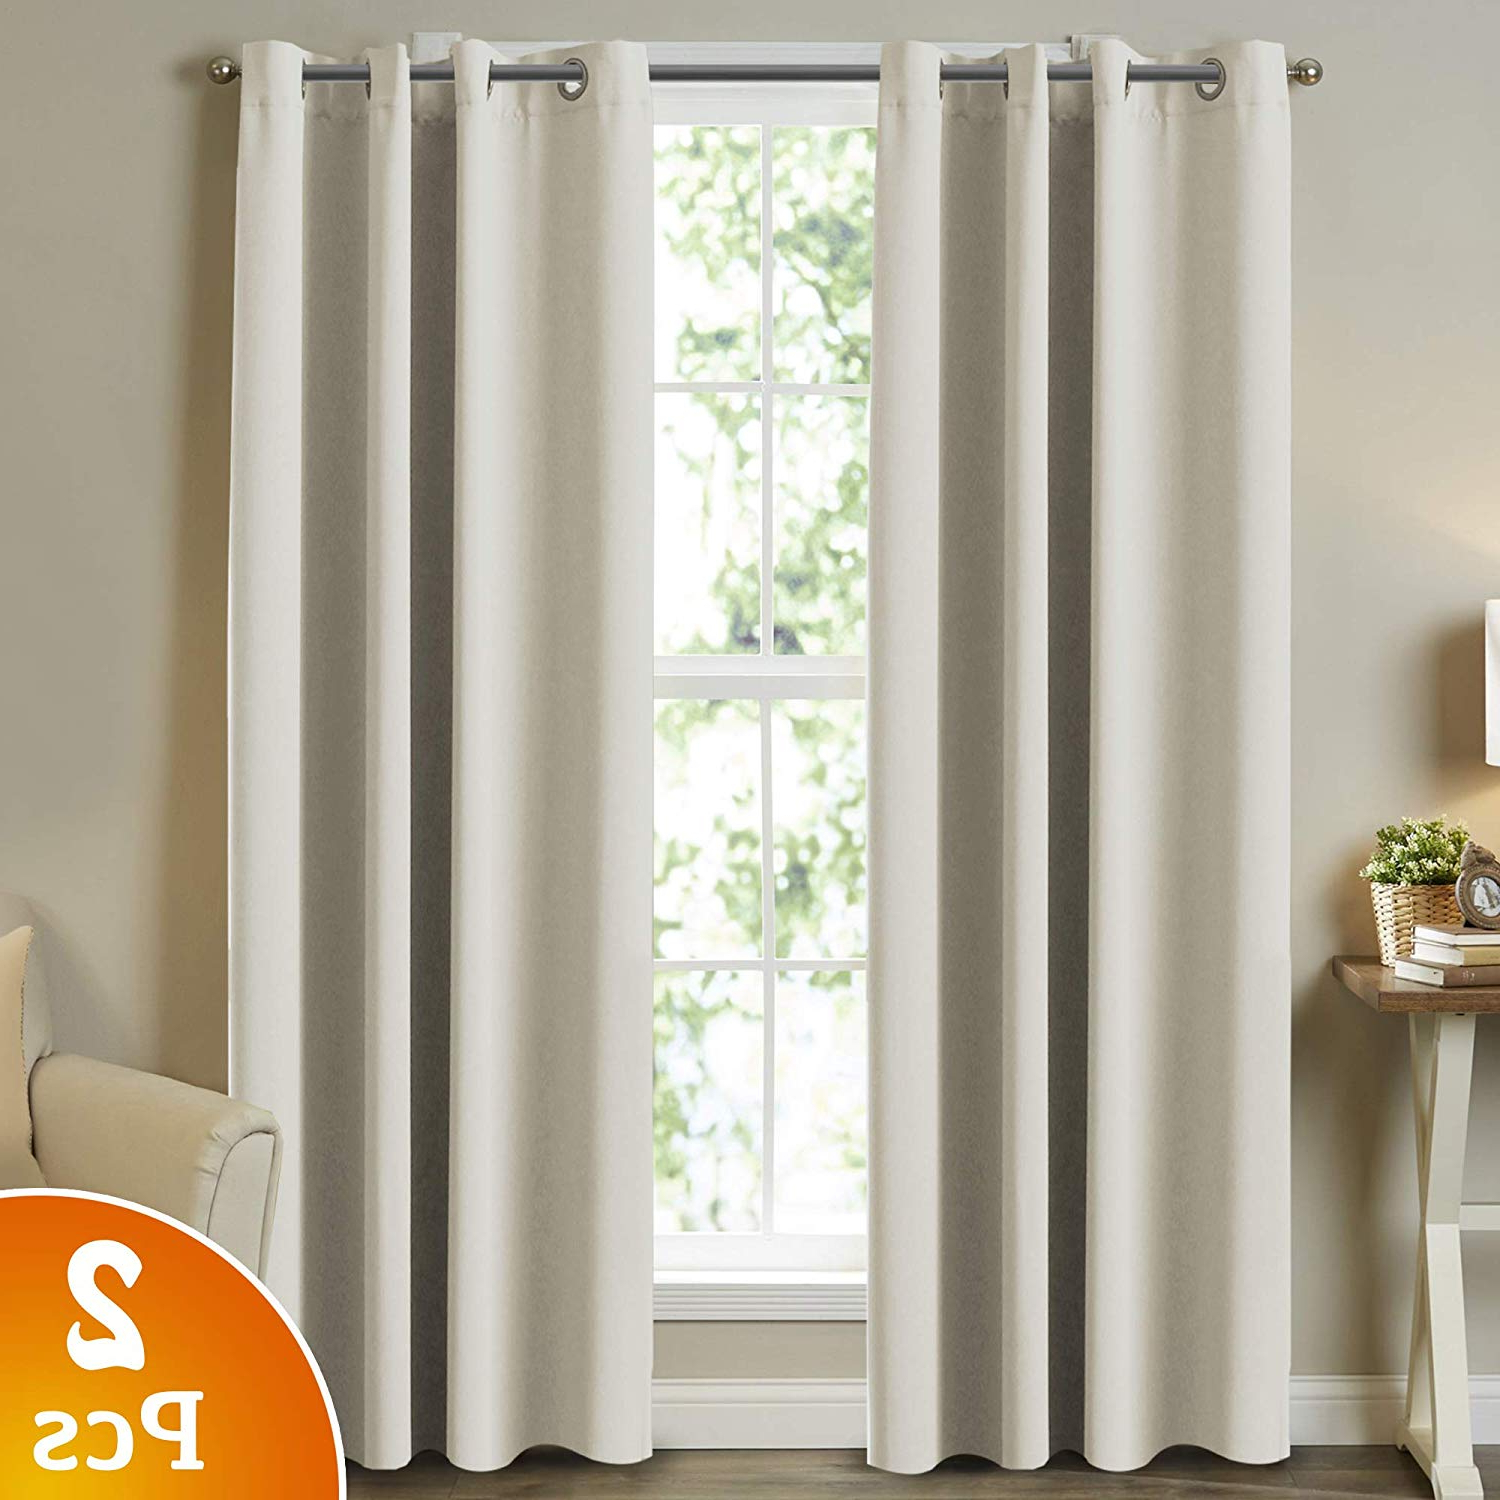 Grommet Room Darkening Curtain Panels For Most Current Turquoize Room Darkening Curtain Panels For Living Room Thermal Insulated Solid Grommet Room Darkening Window Curtains For Bedroom (2 Panels, W52 X (View 13 of 20)